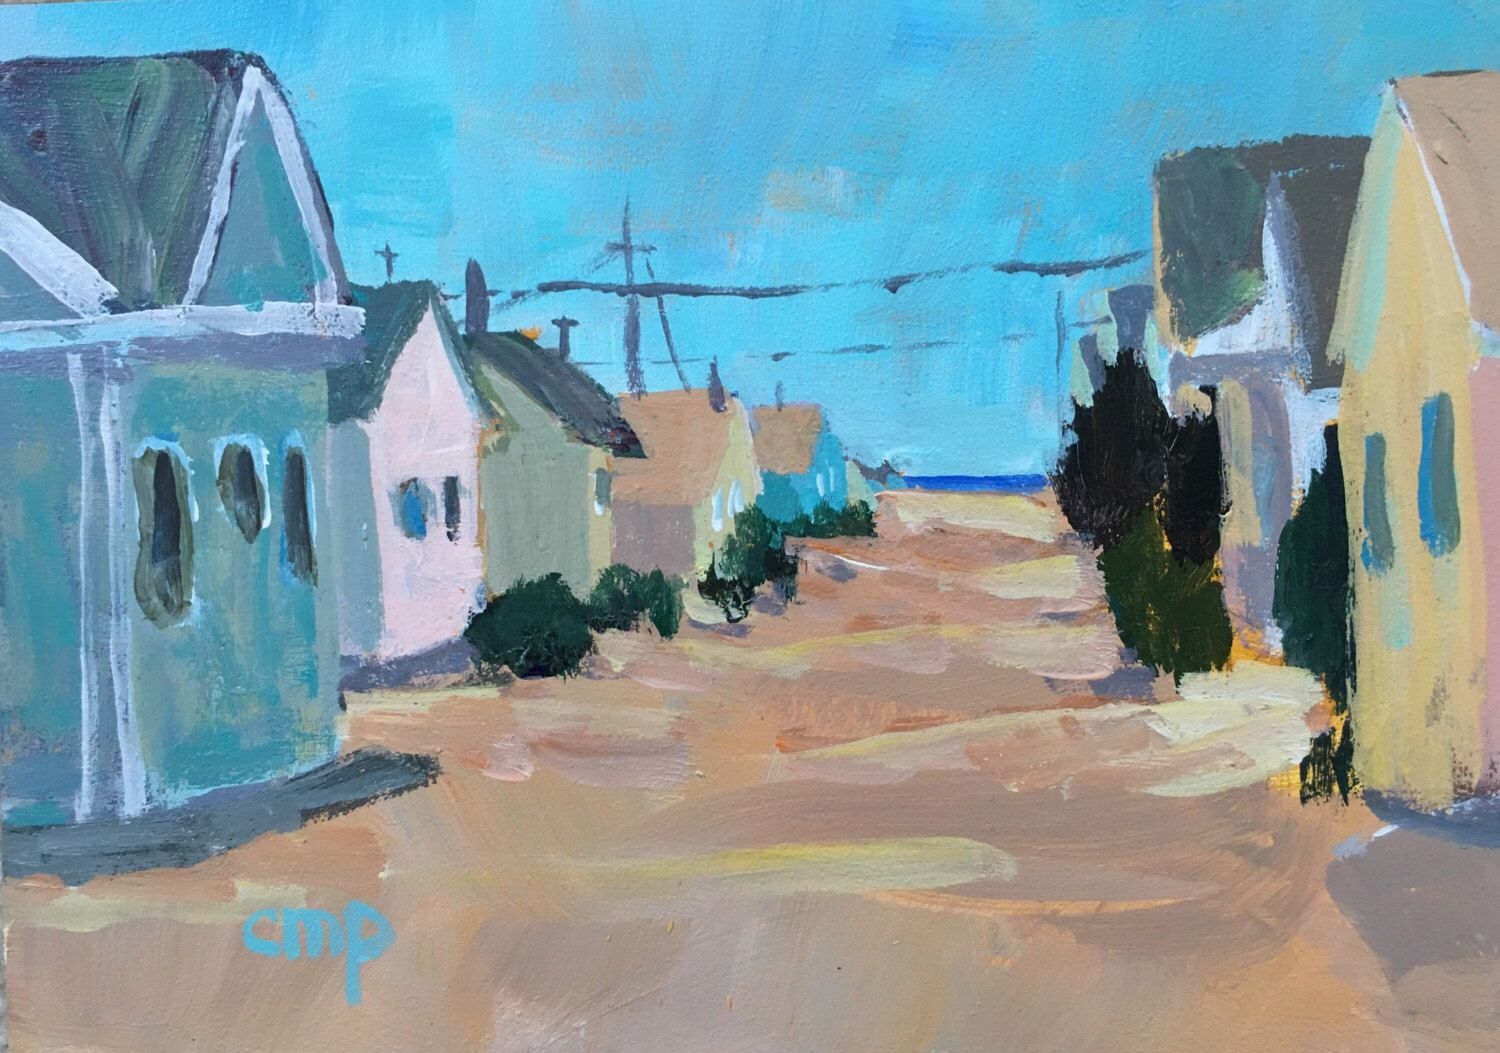 A personal favorite from my Etsy shop https://www.etsy.com/listing/455746558/beach-decor-beach-cottages-seaside-art